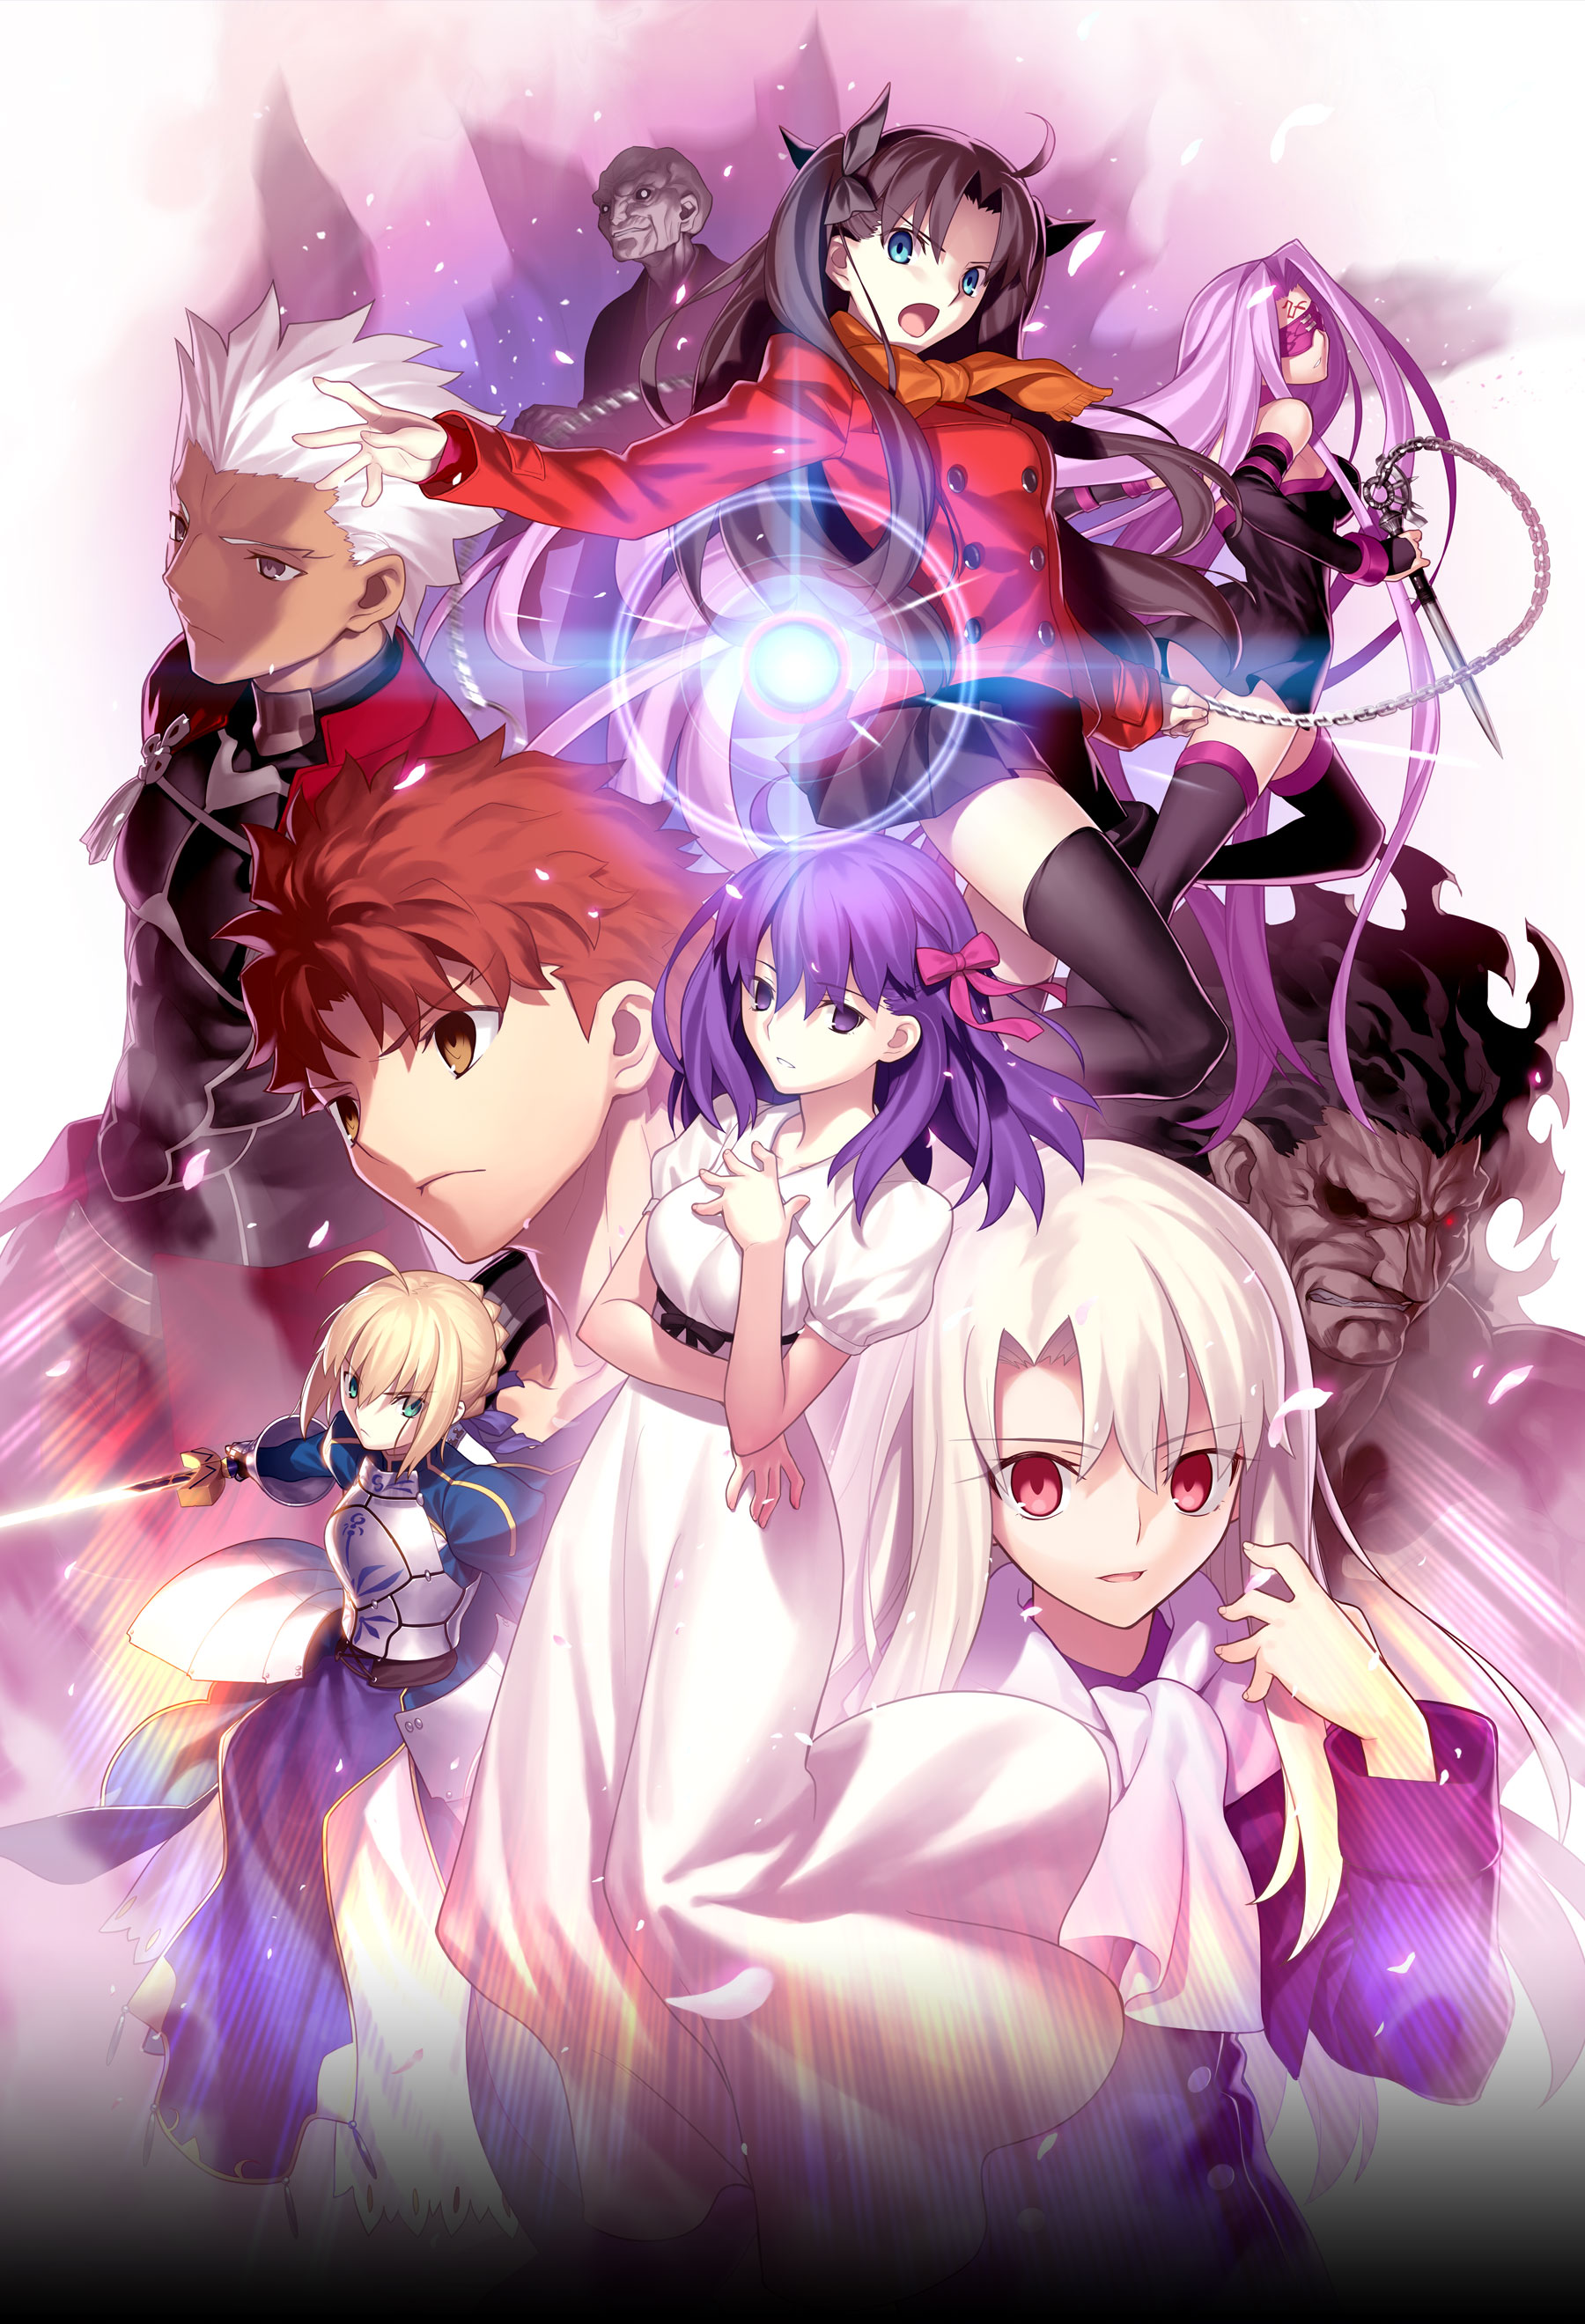 「Fate/stay night [Heaven's Feel]」の画像検索結果